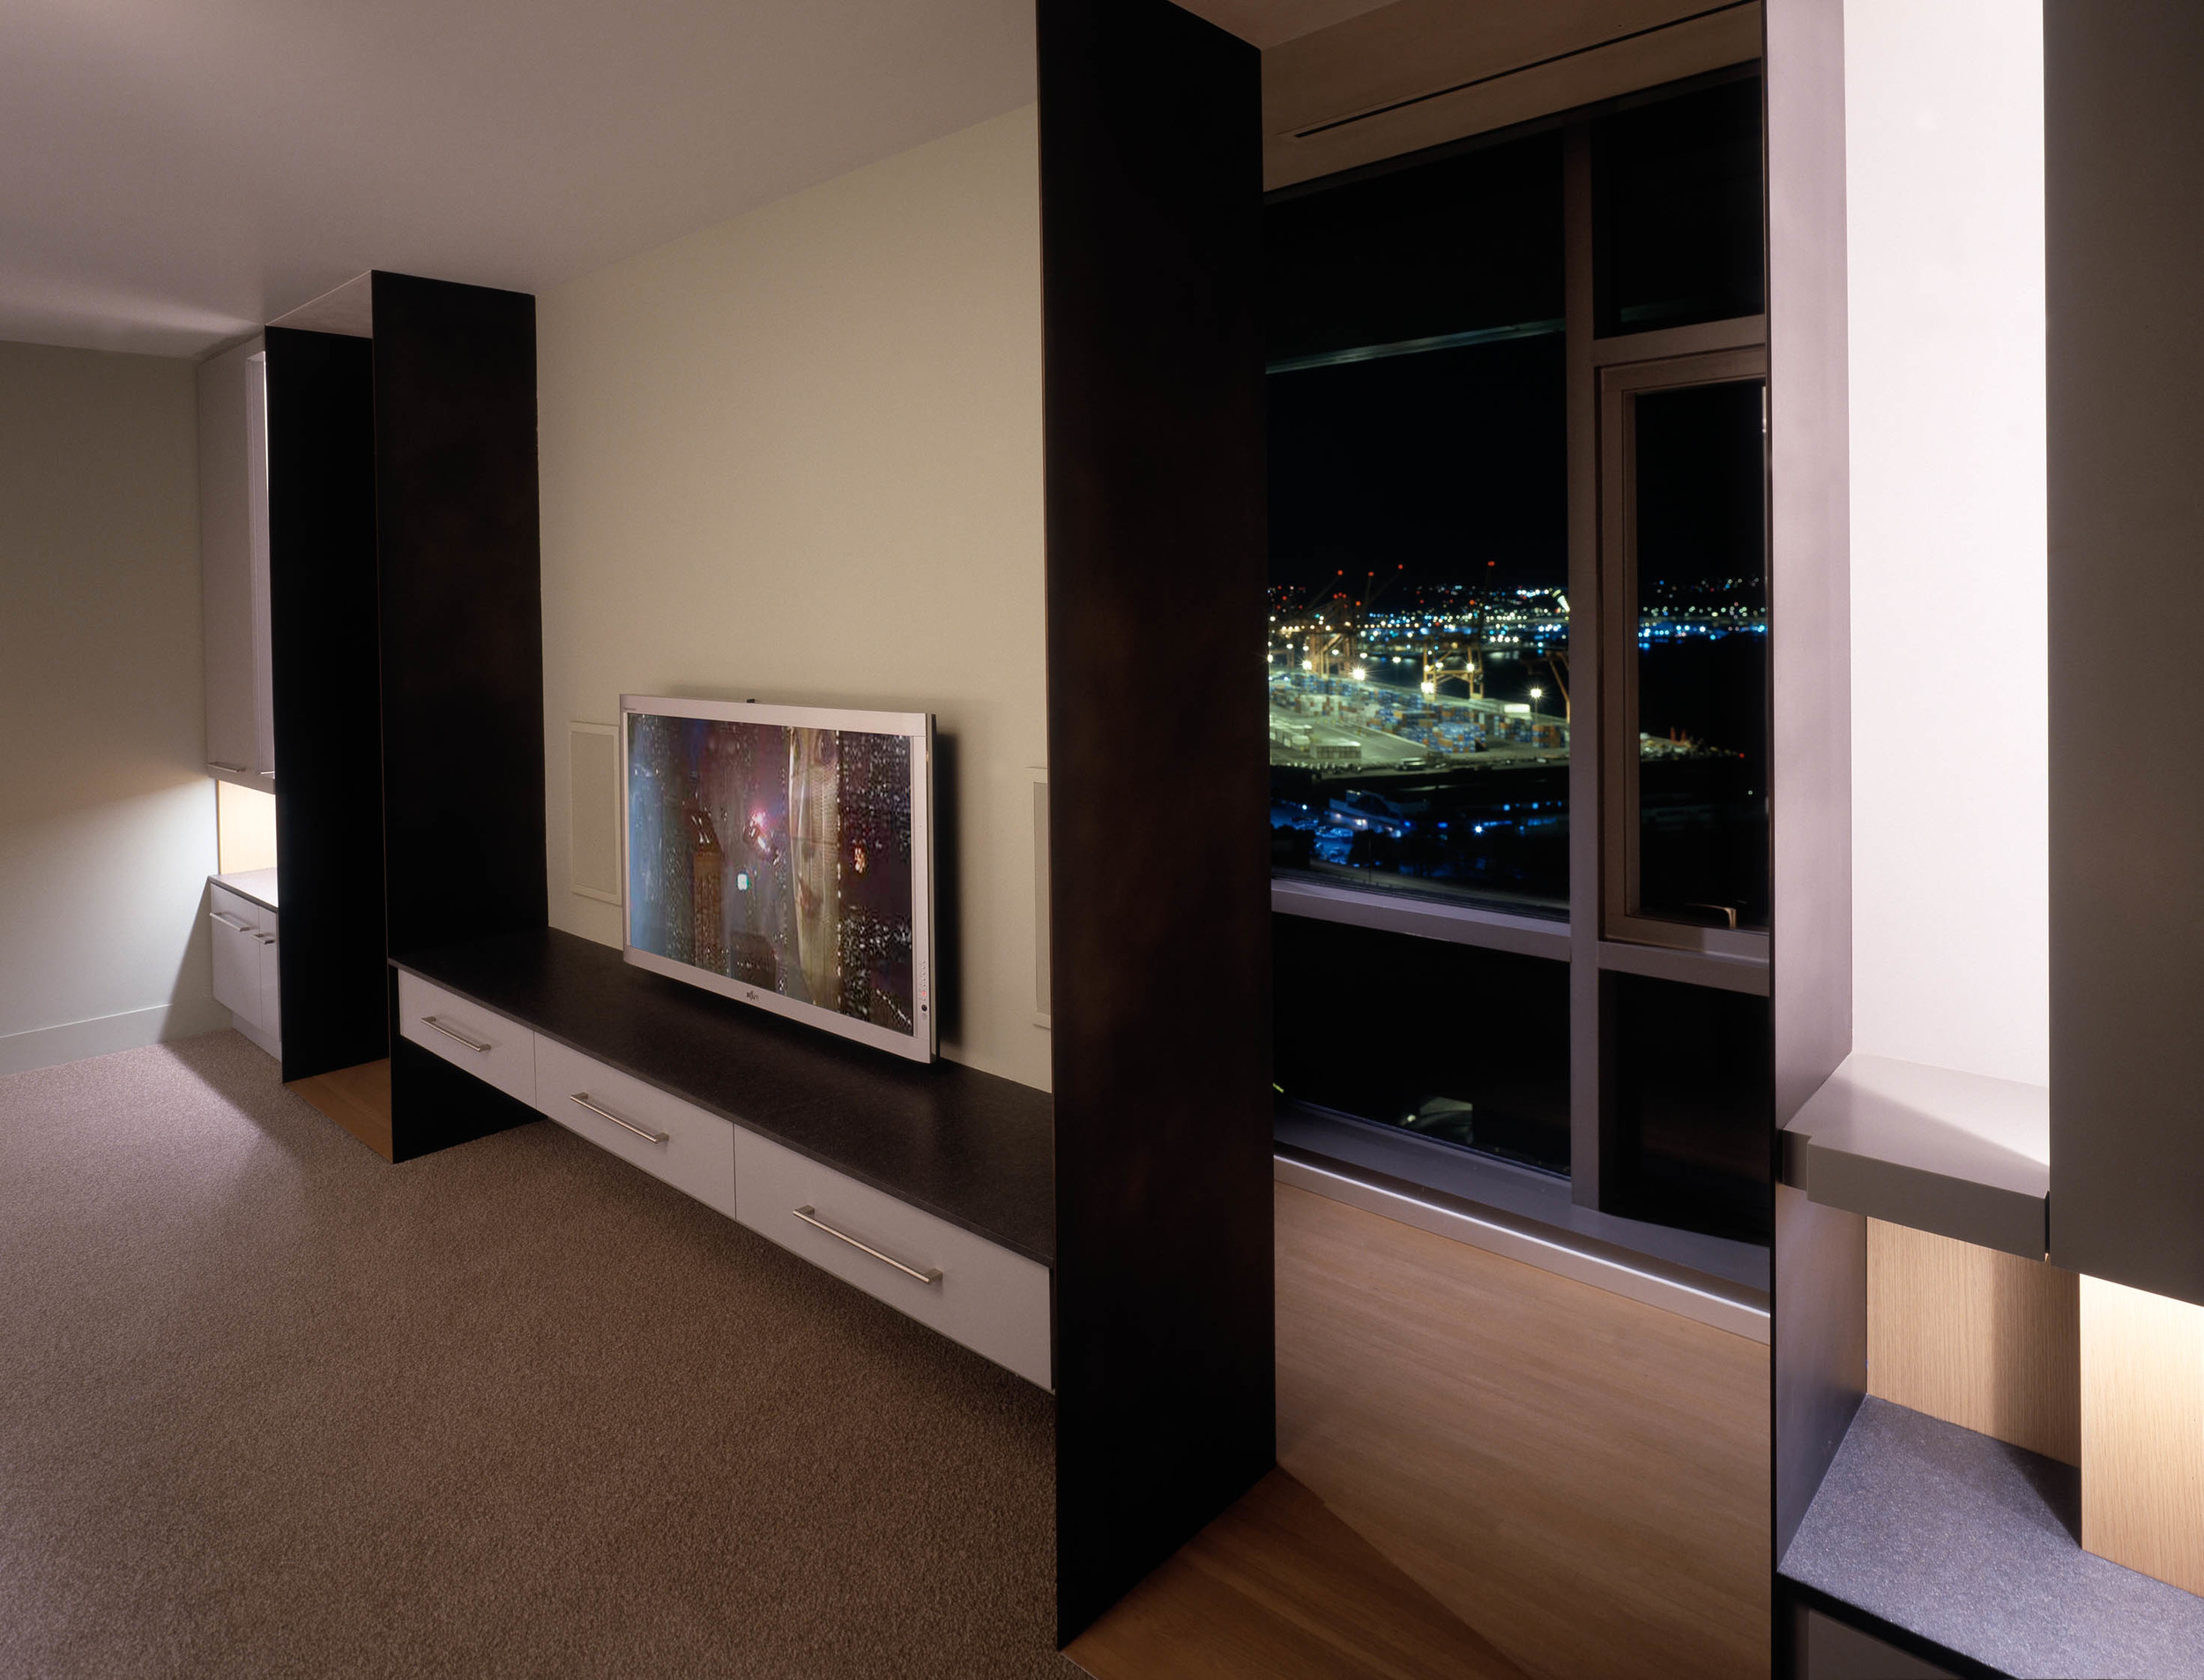 The entertainment room was screened off from the dramatic view beyond and lit with soft, indirect lighting.